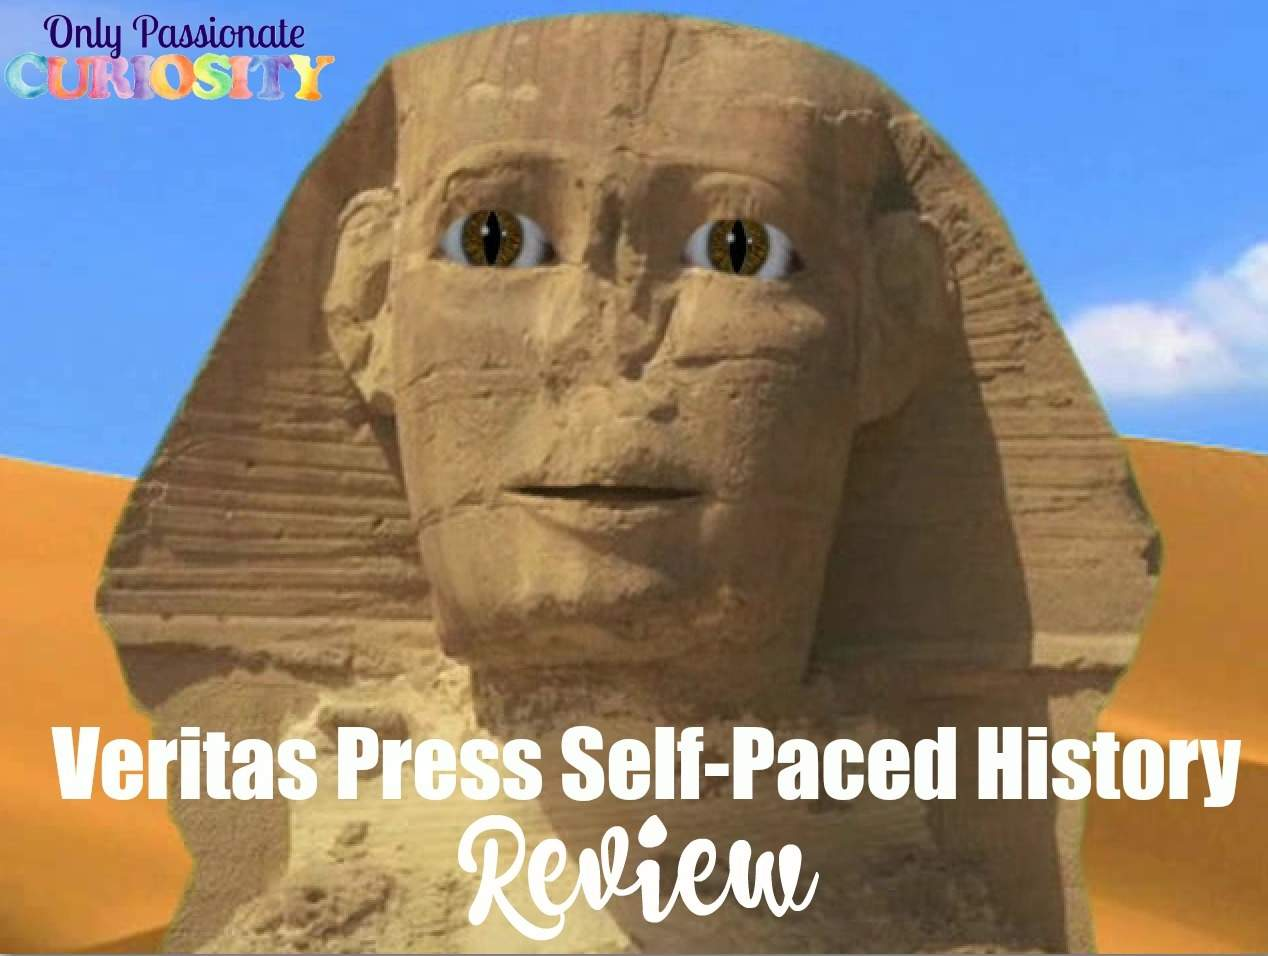 Veritas Press Self-Paced History Review and Giveaway